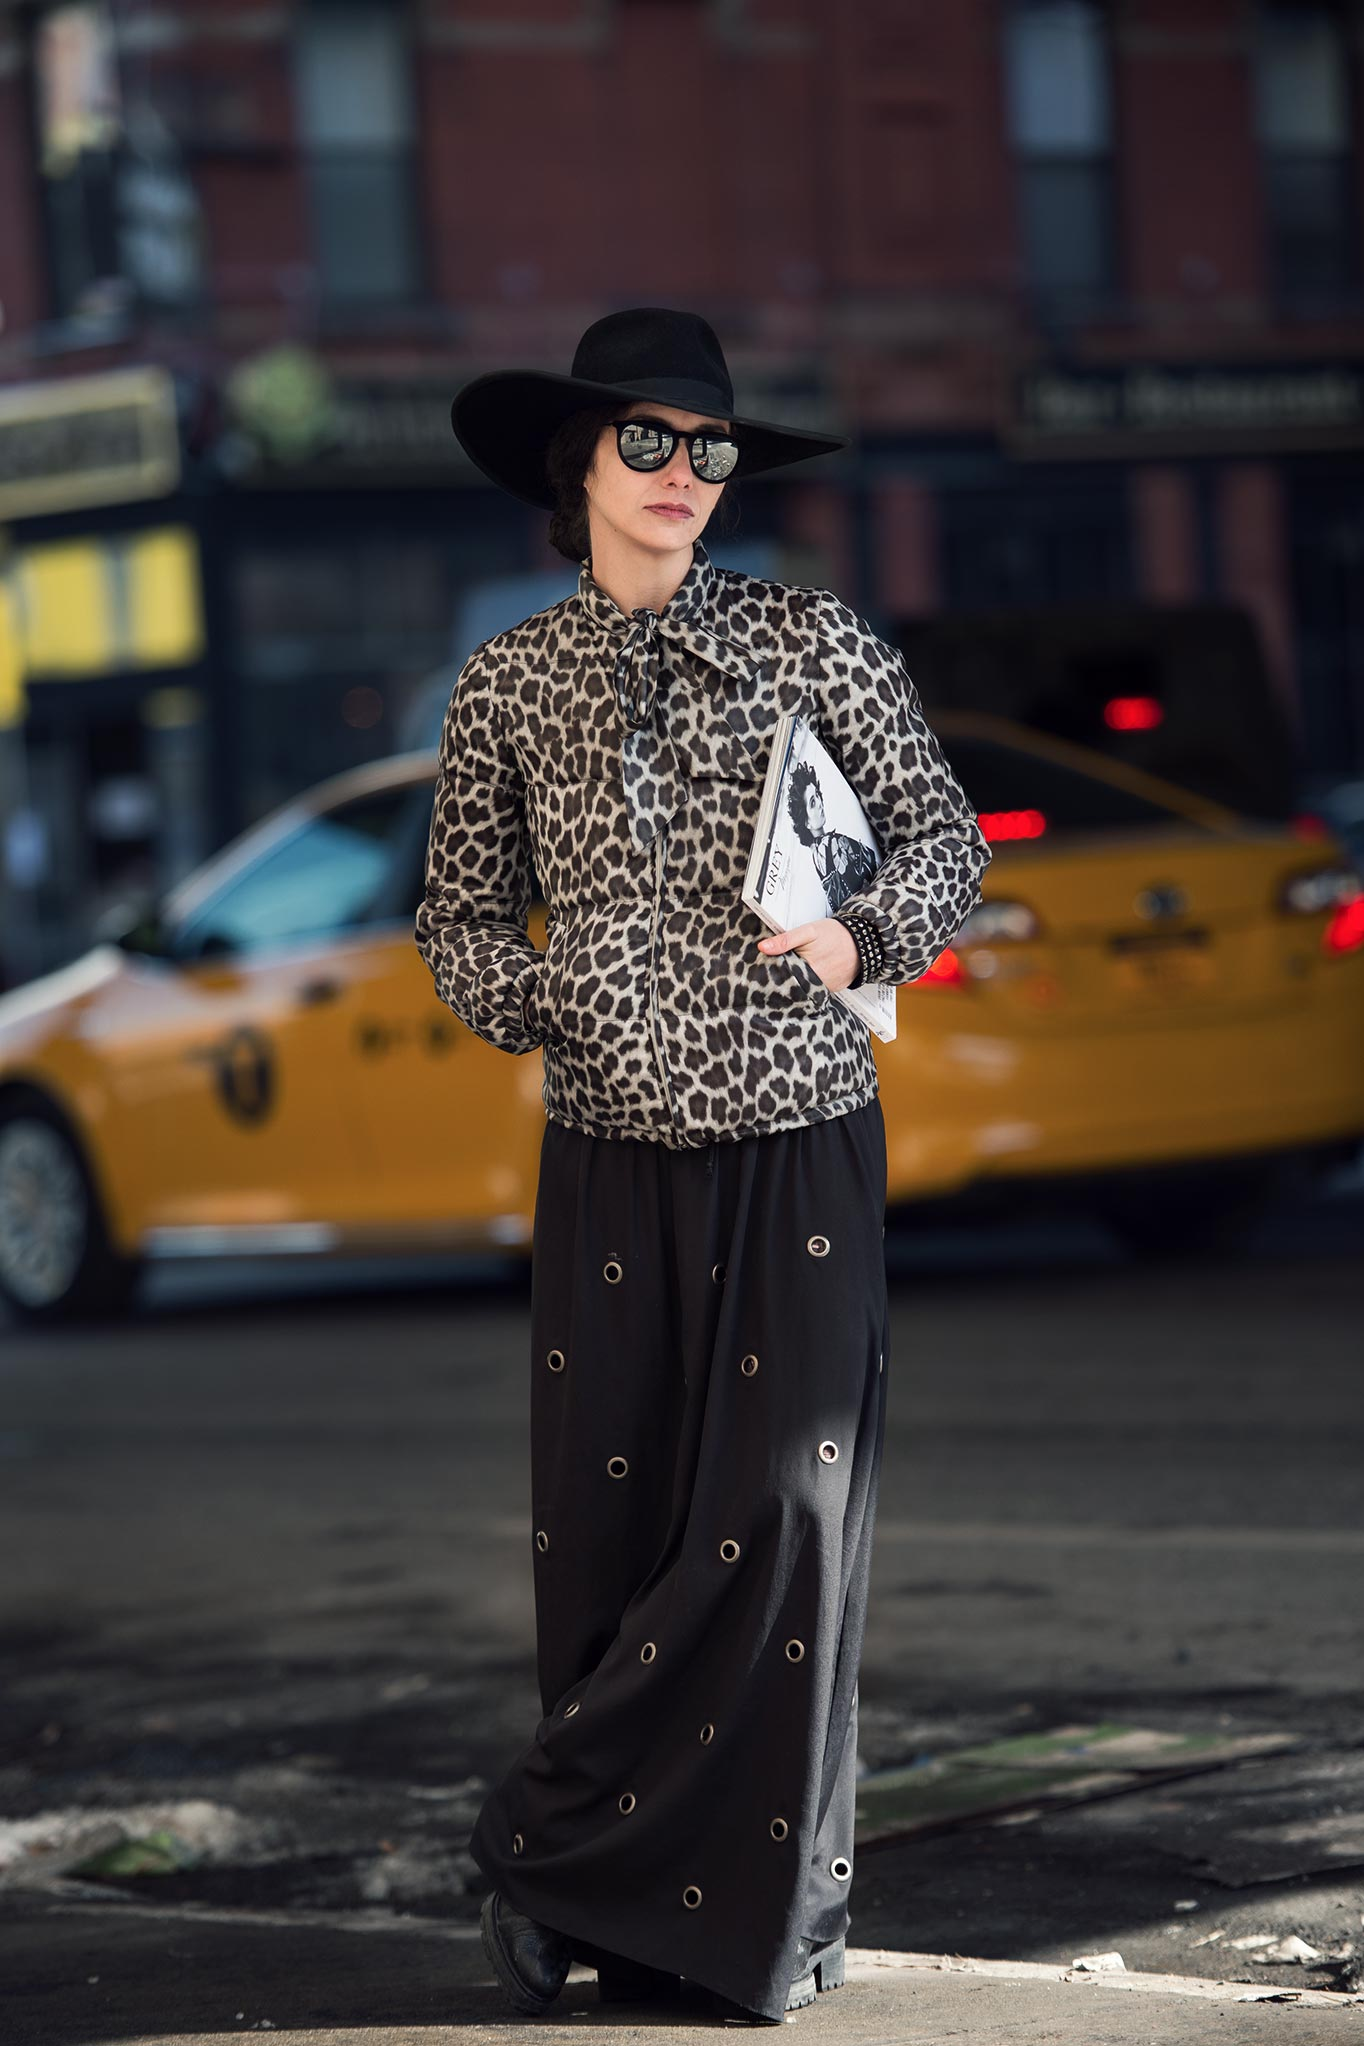 Valentina Ilardi Martin at New York Fashion Week Fall/Winter 2015